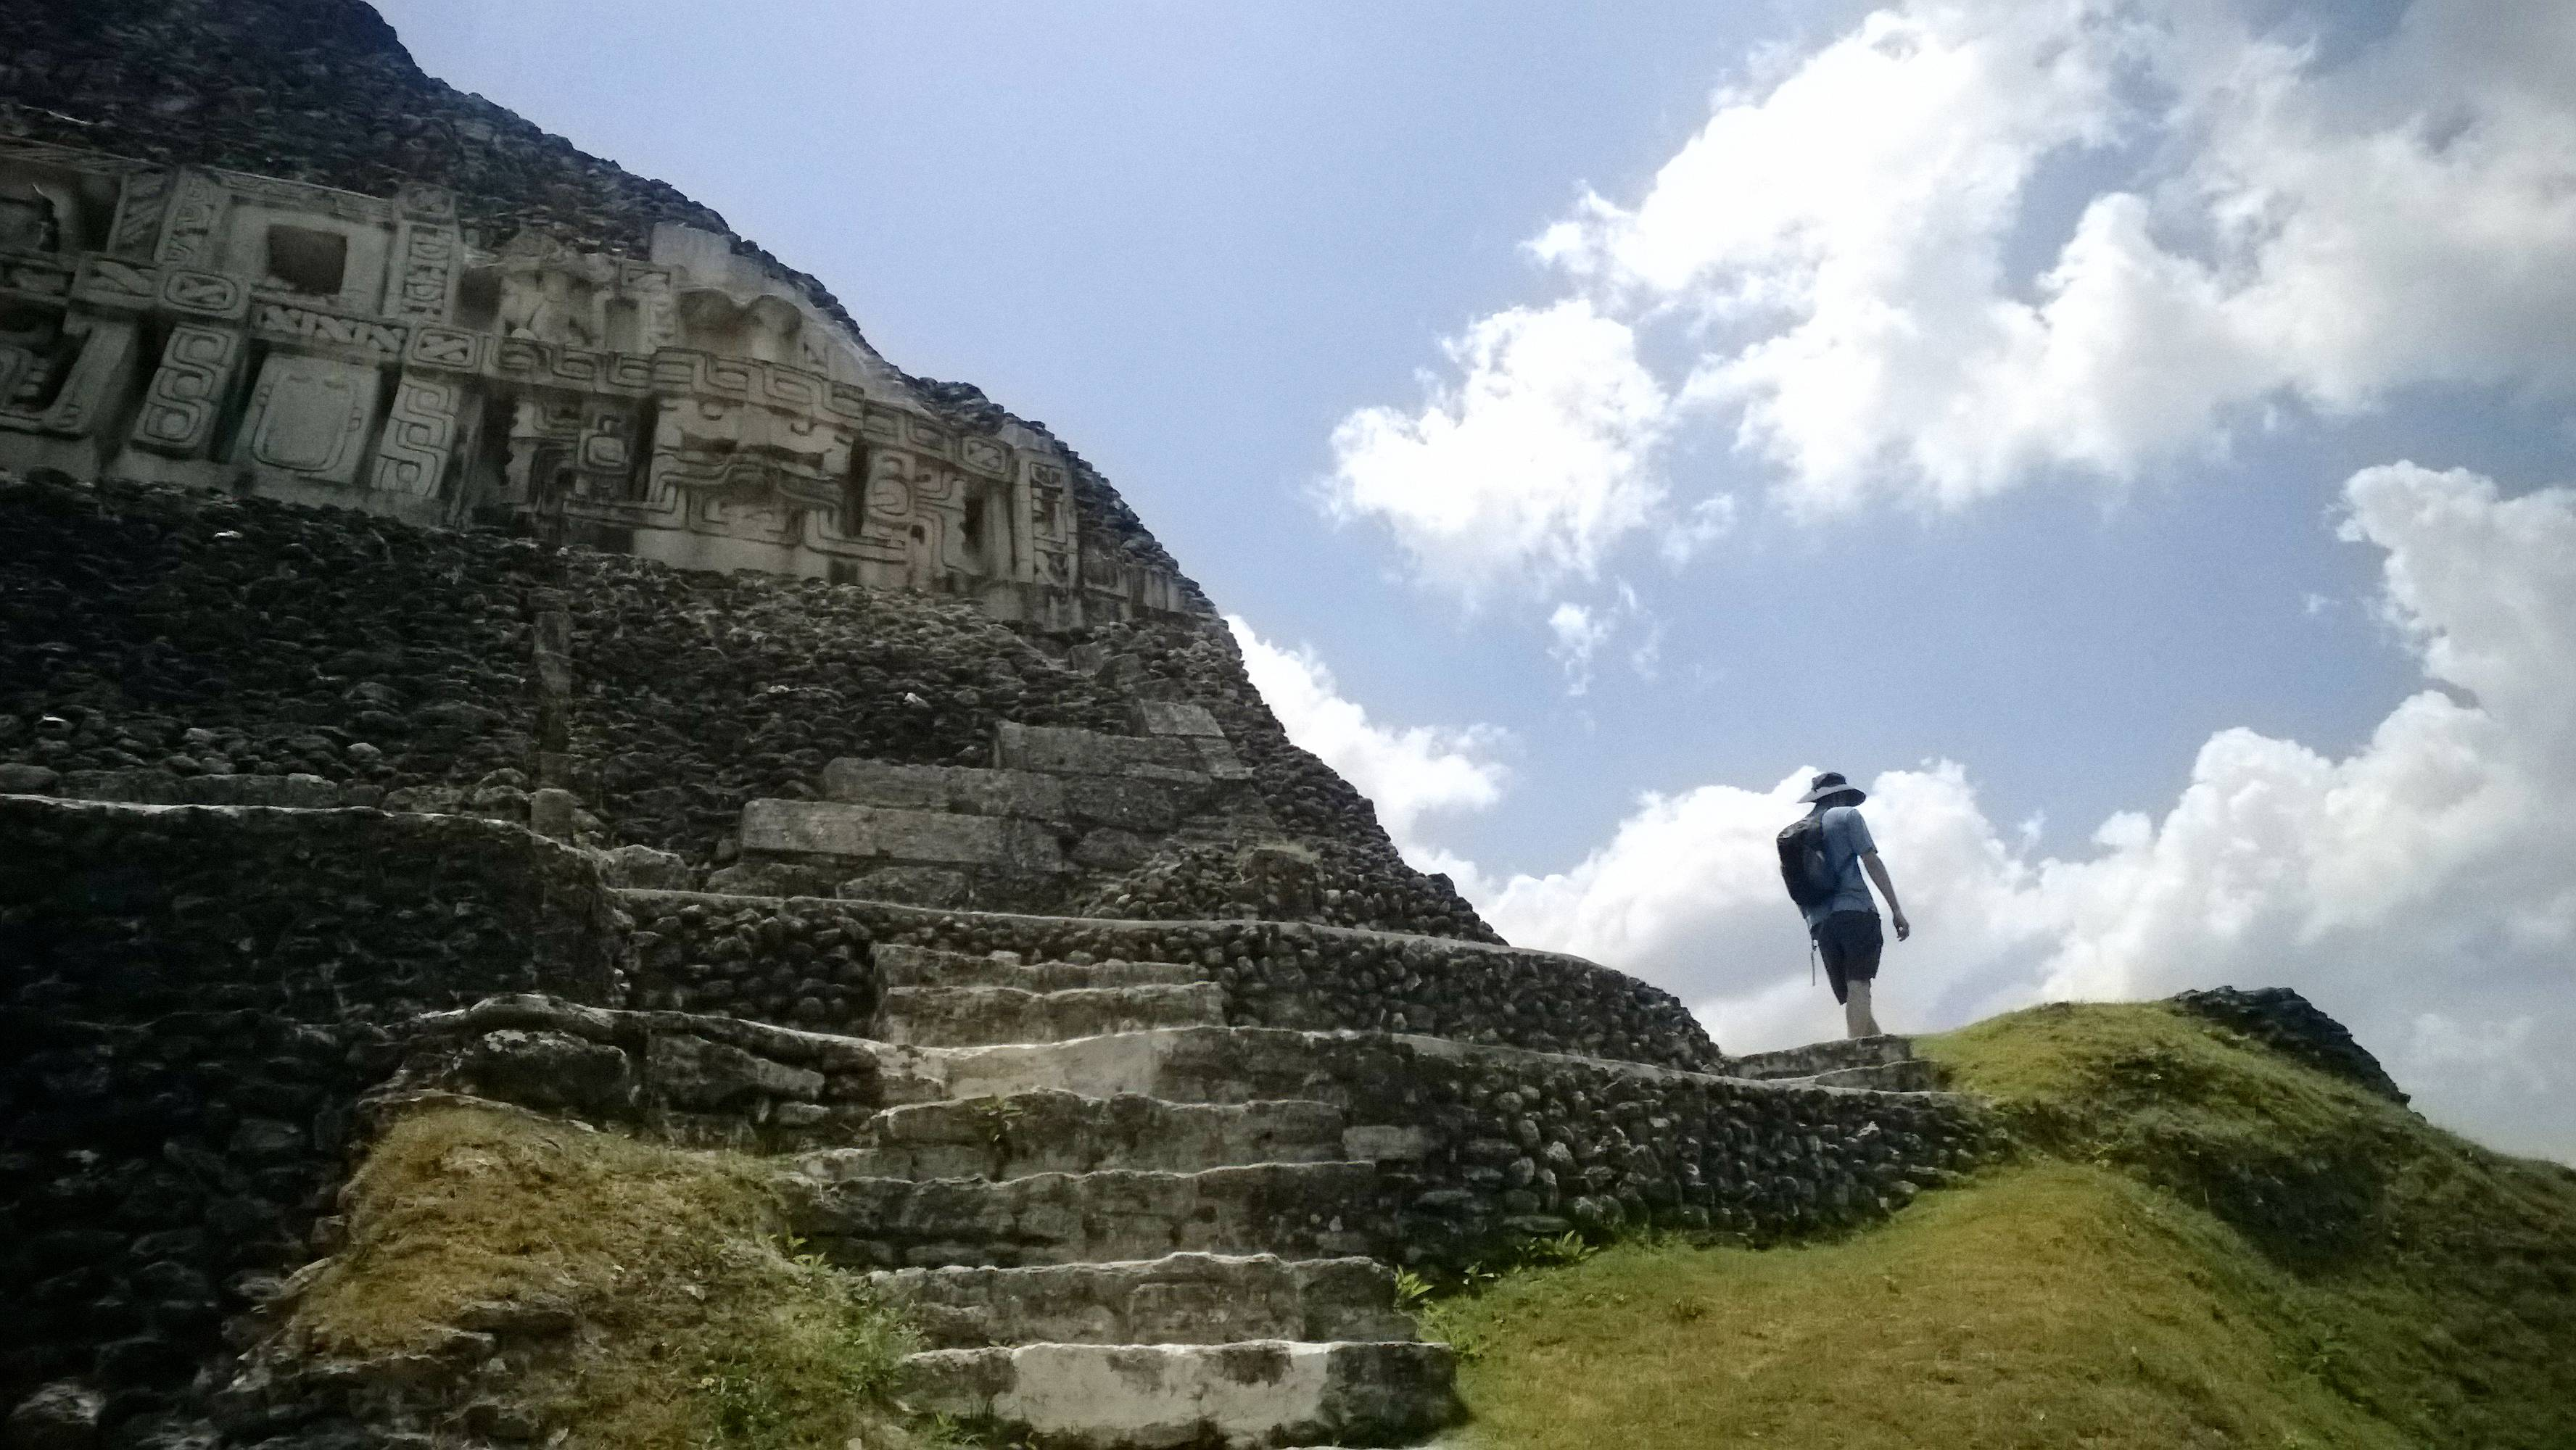 Despite its lofty appearance and elaborate decorations, the Castillo (at the archaeological site of Xunantunich) likely served as an administrative hub, not a temple, according to the visitor's center.